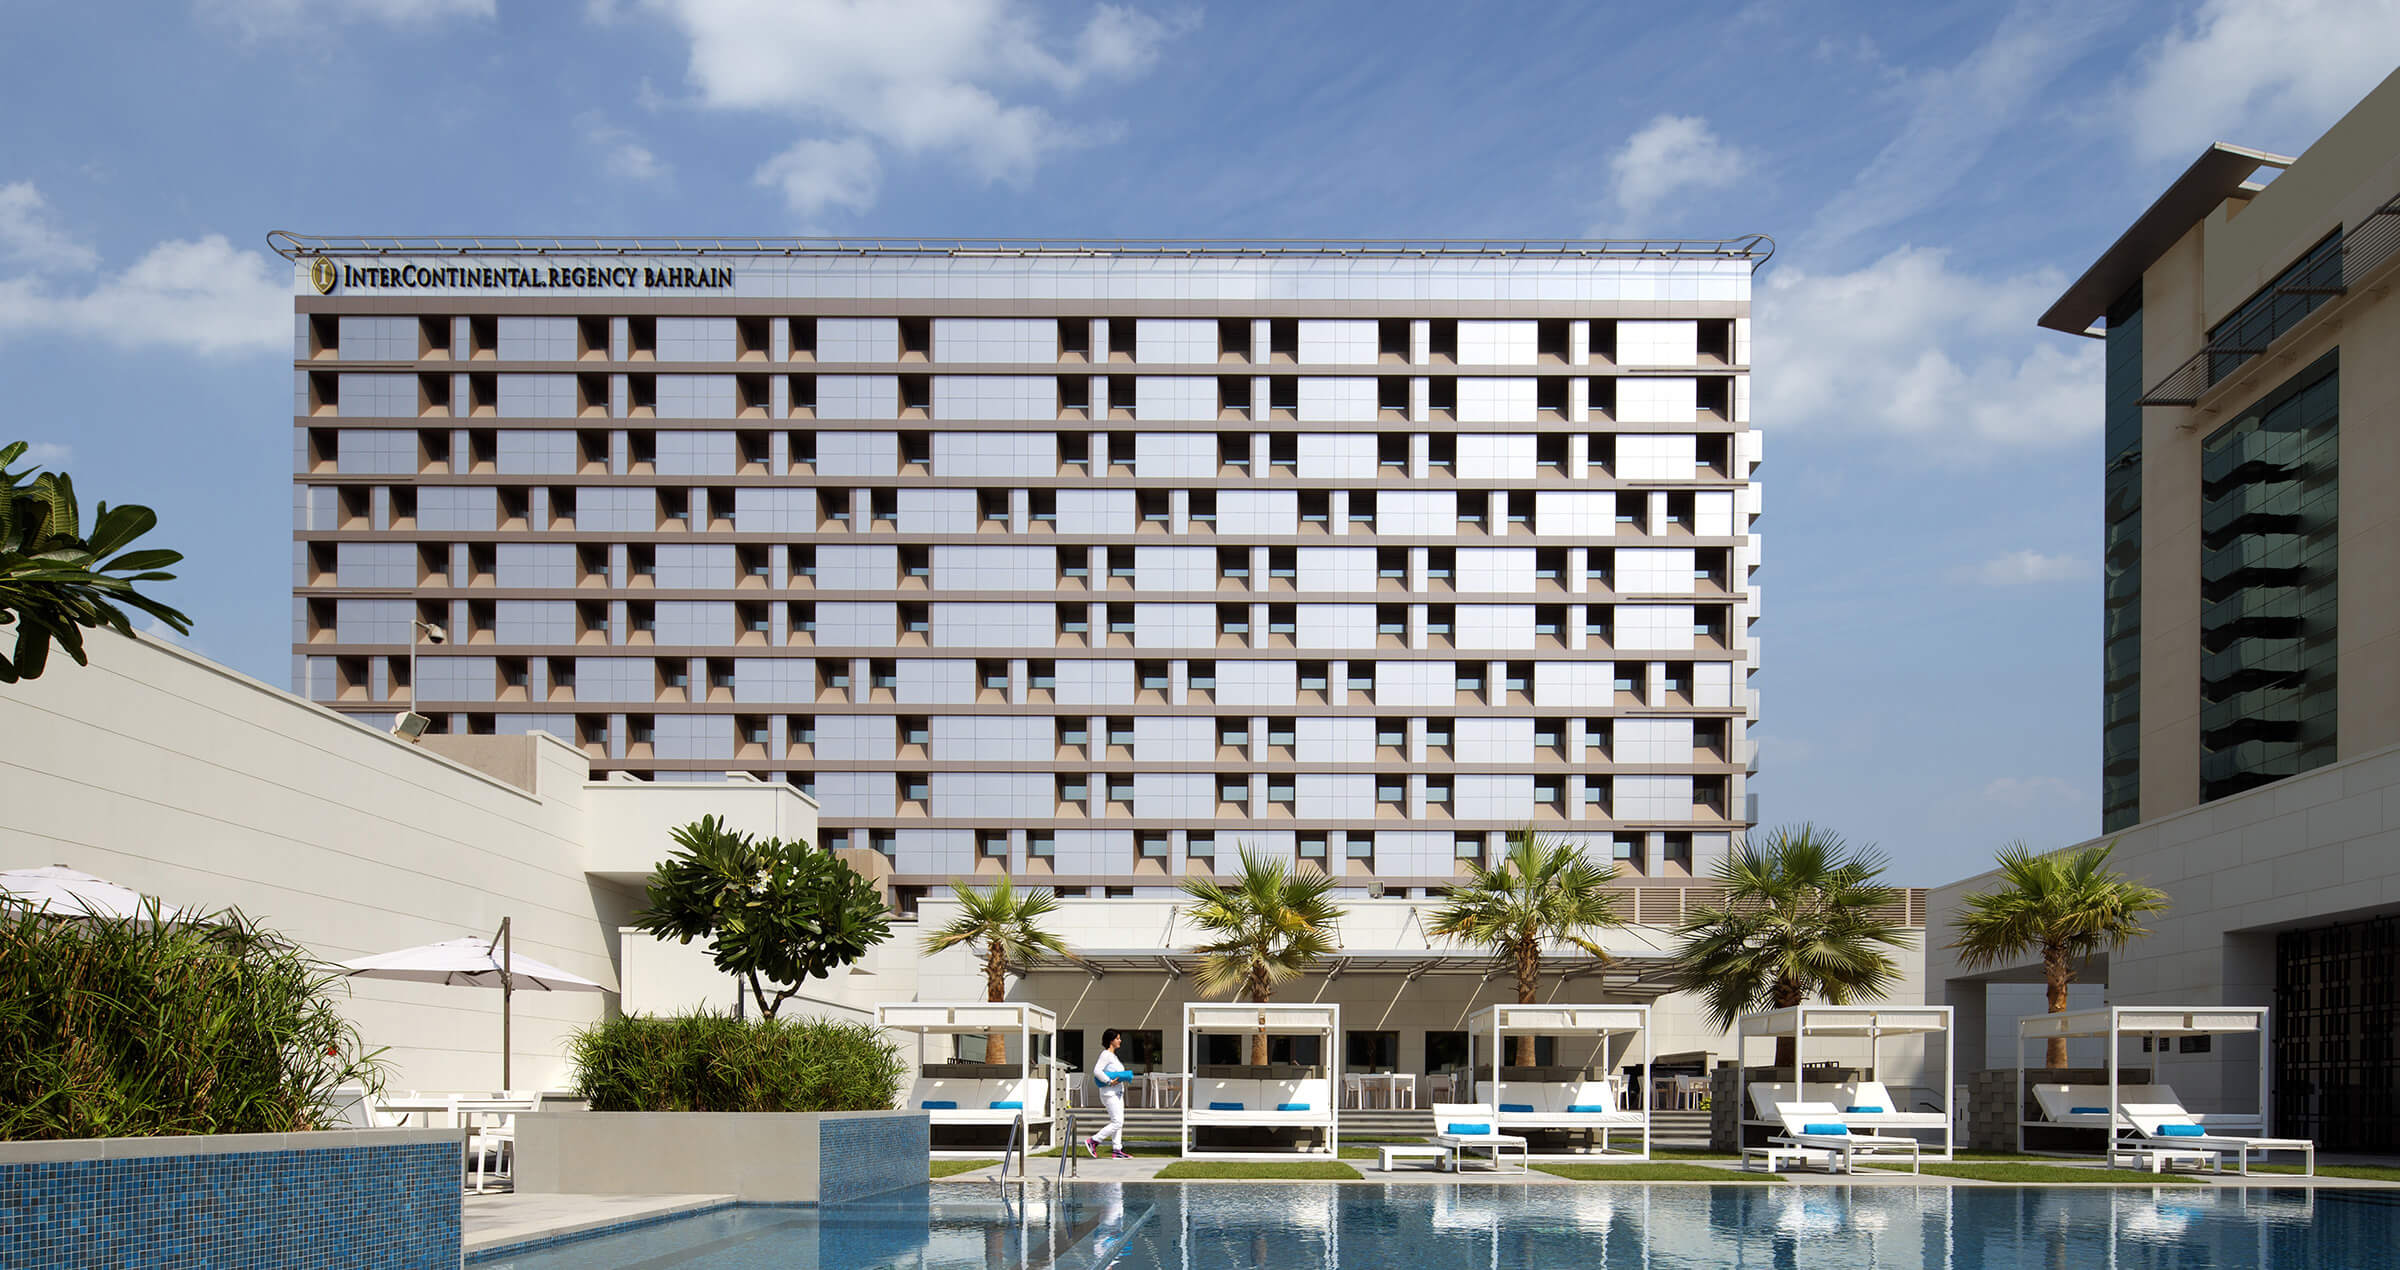 A modern and high-tech facade design by Reform Design Cyprus for the renovated of the InterContinental Hotel in Bahrain.